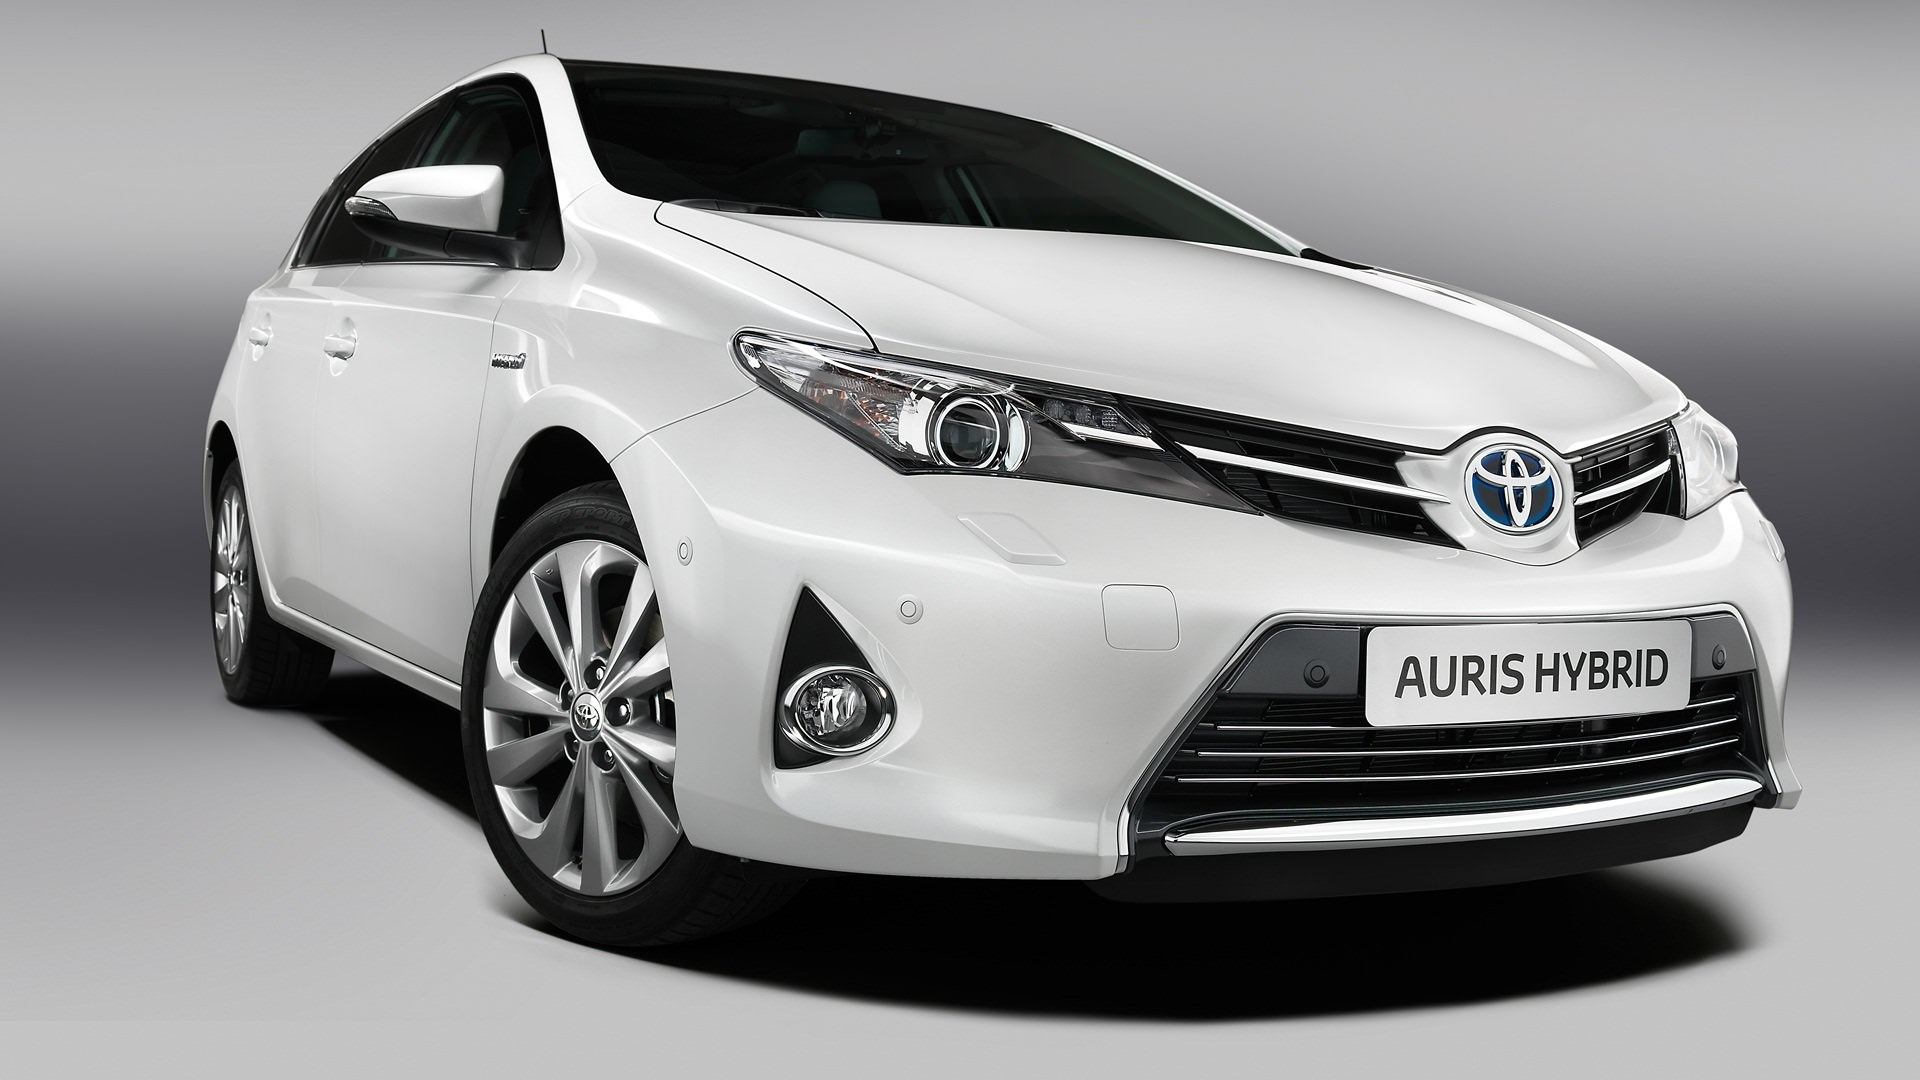 One of the best used family cars for £600 - Toyota Auris